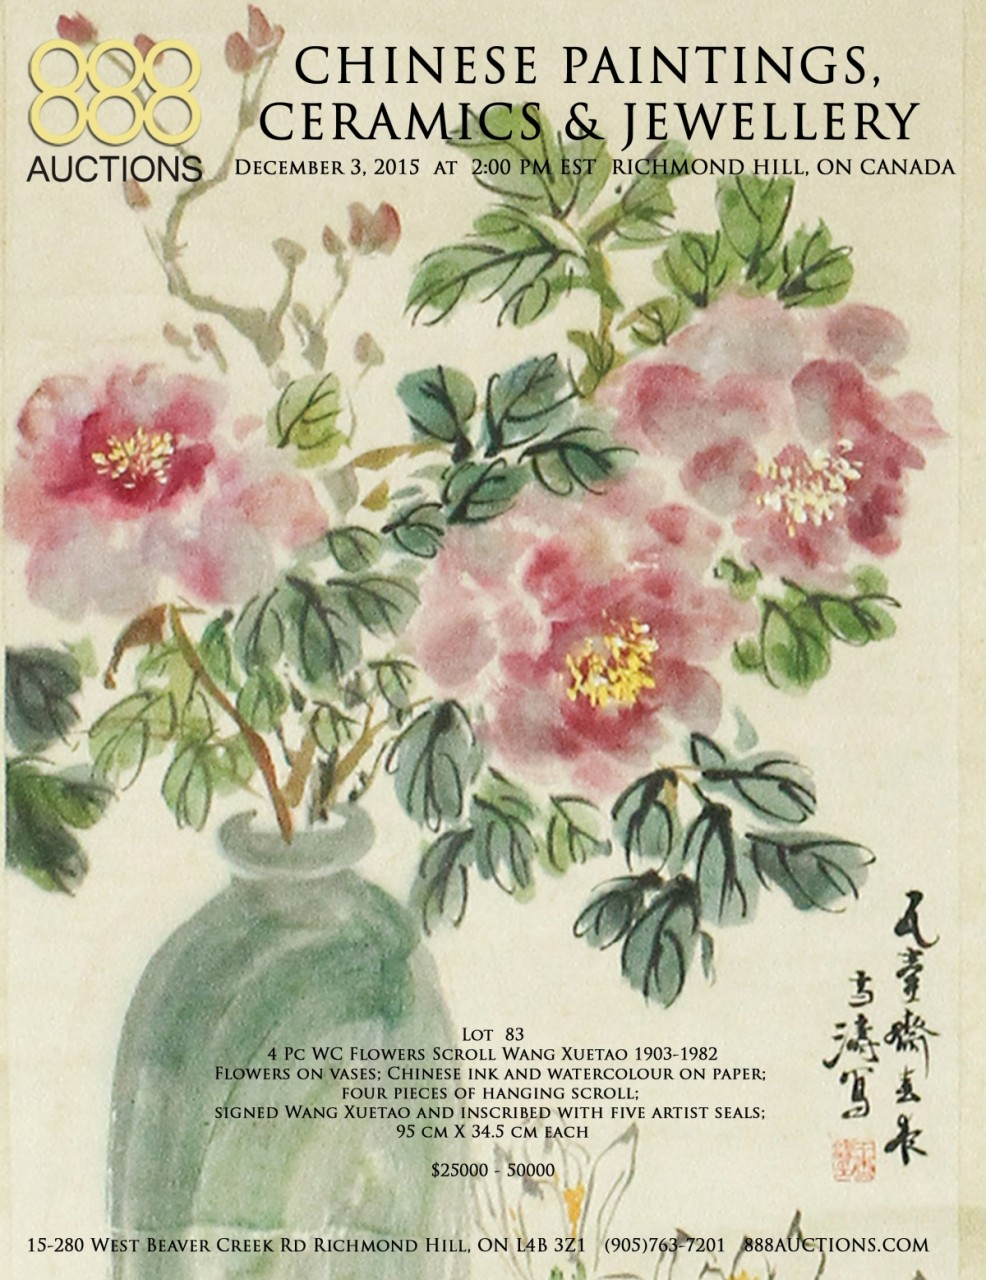 NEXT AUCTION 03 DEC 2015 CHINESE PAINTINGS, CERAMICS & JEWELLERY